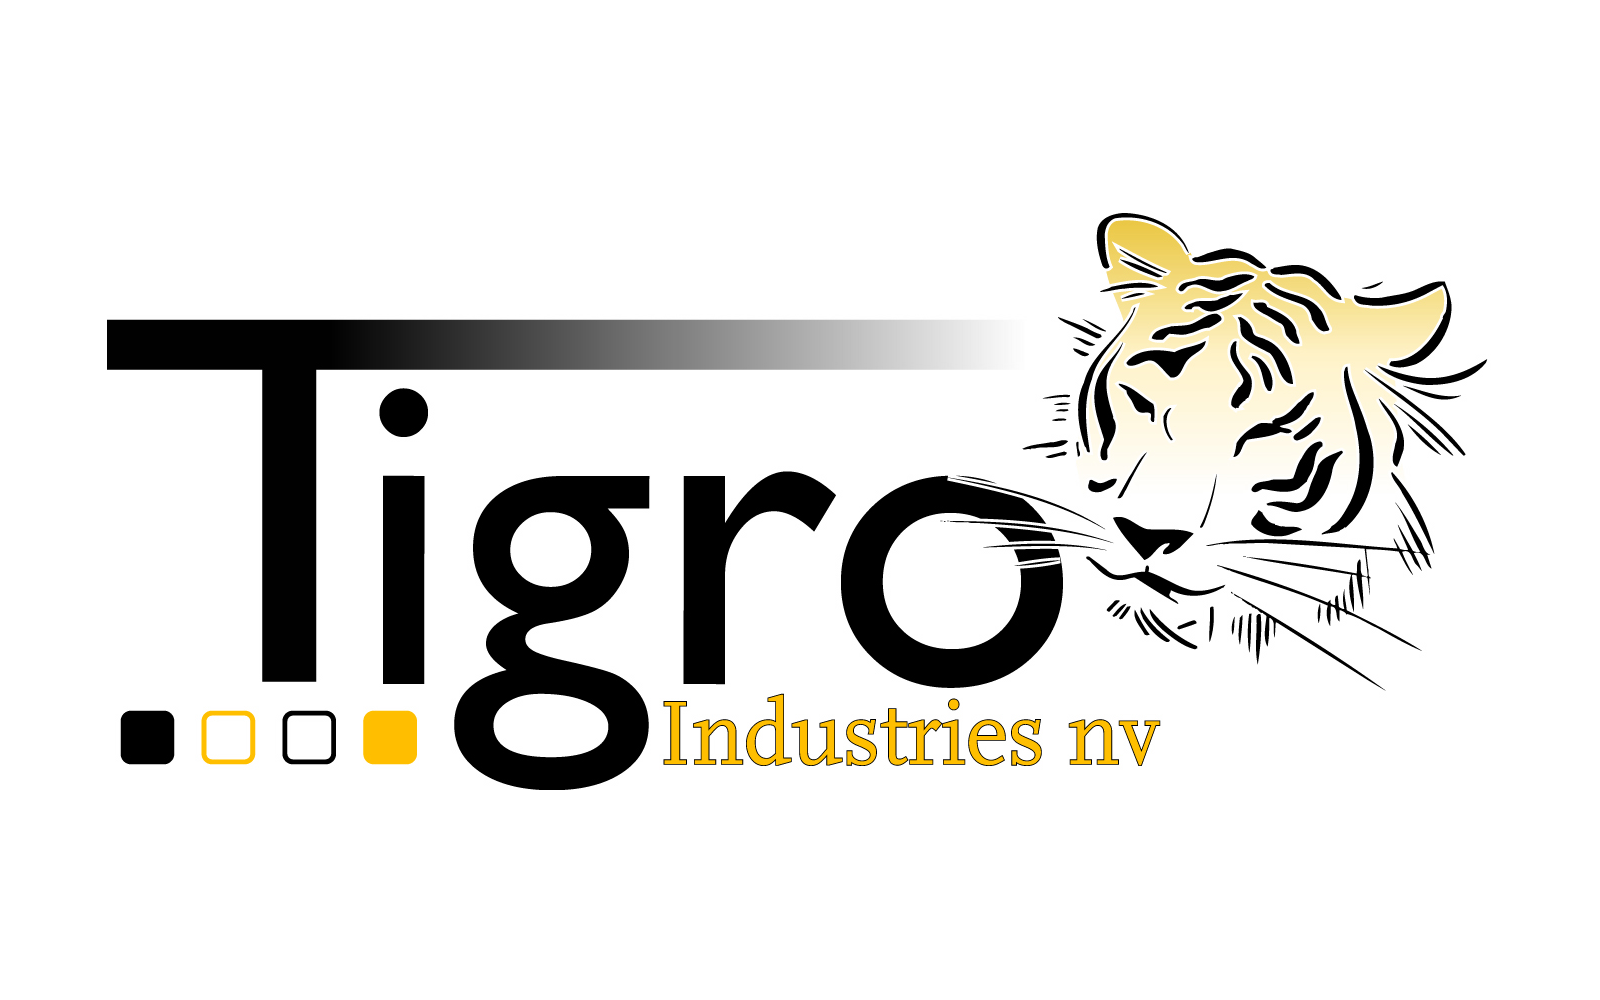 Tigro Industries N.V.